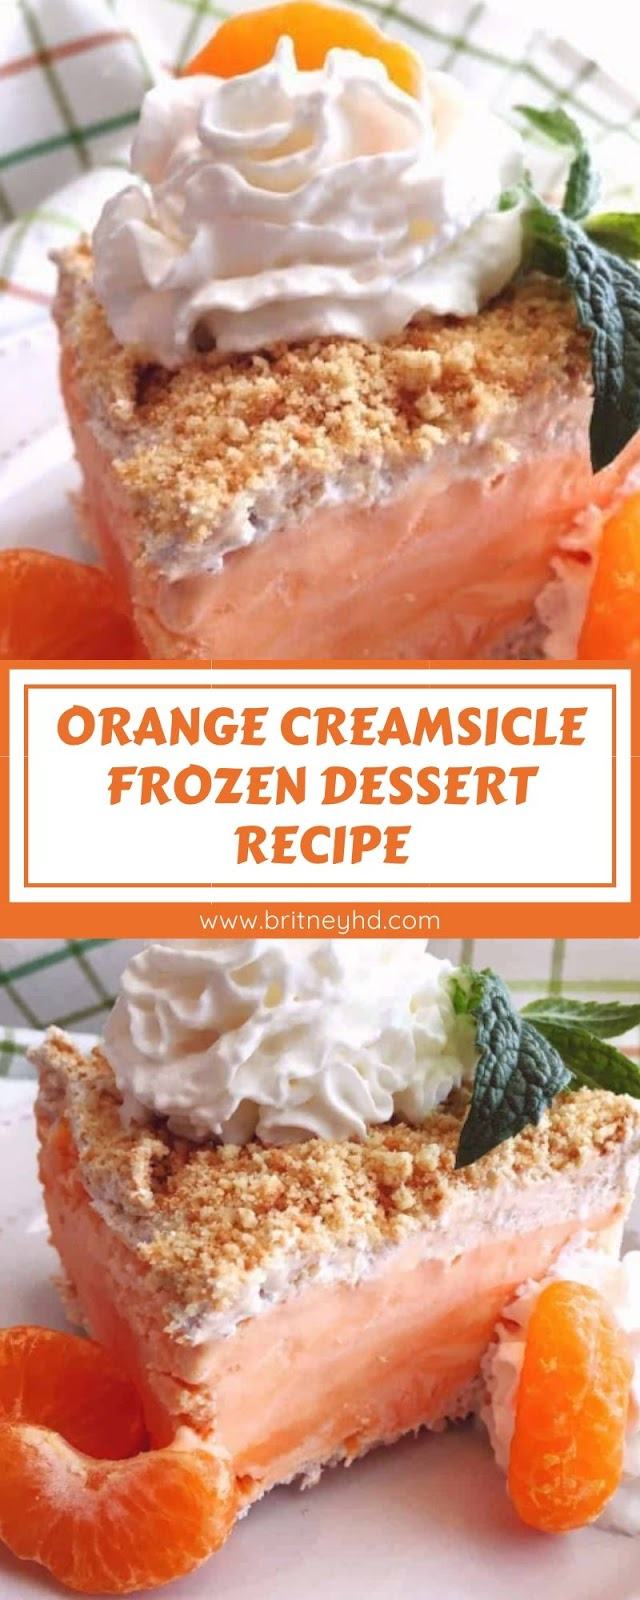 ORANGE CREAMSICLE FROZEN DESSERT RECIPE